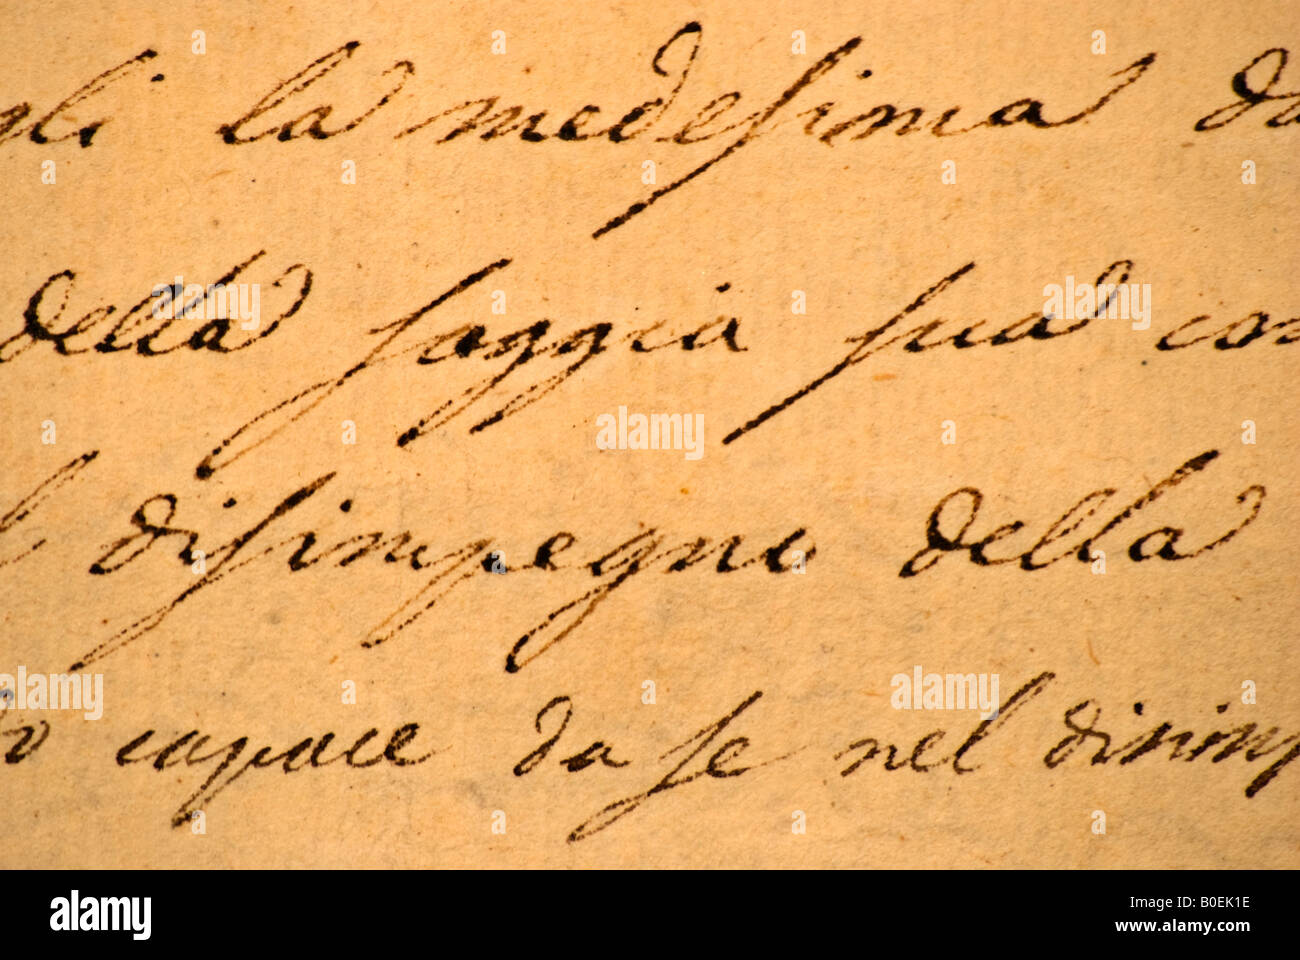 Close Up Of Italian Cursive Text On An Old Letter Handwritten Stock